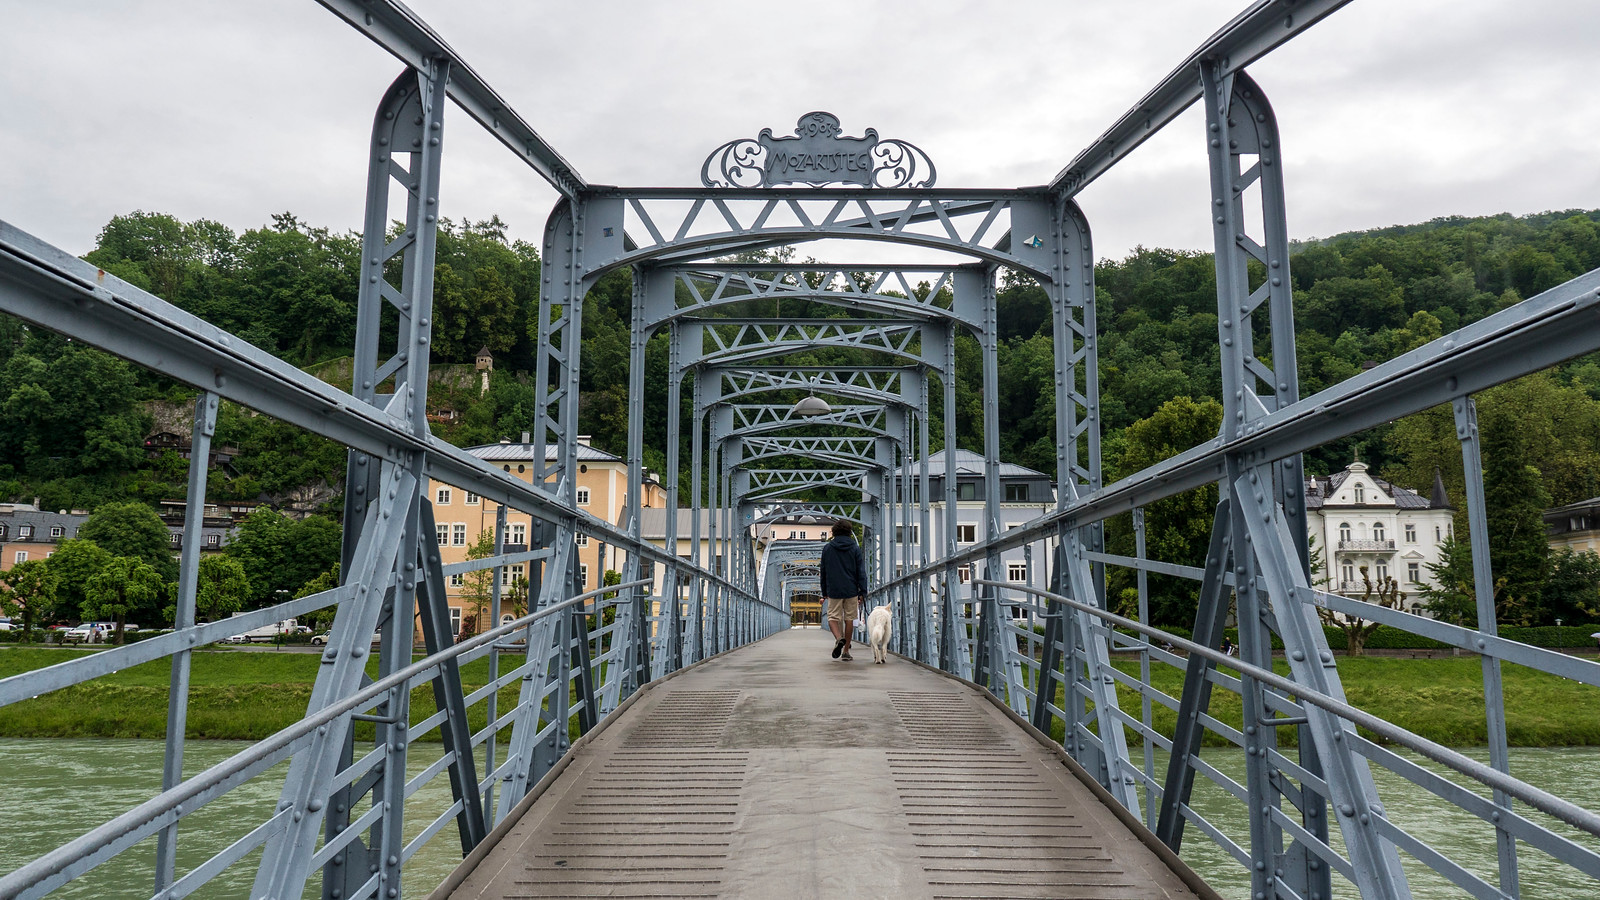 Mozartsteg, an Art Nouveau pedestrian bridge in Salzburg